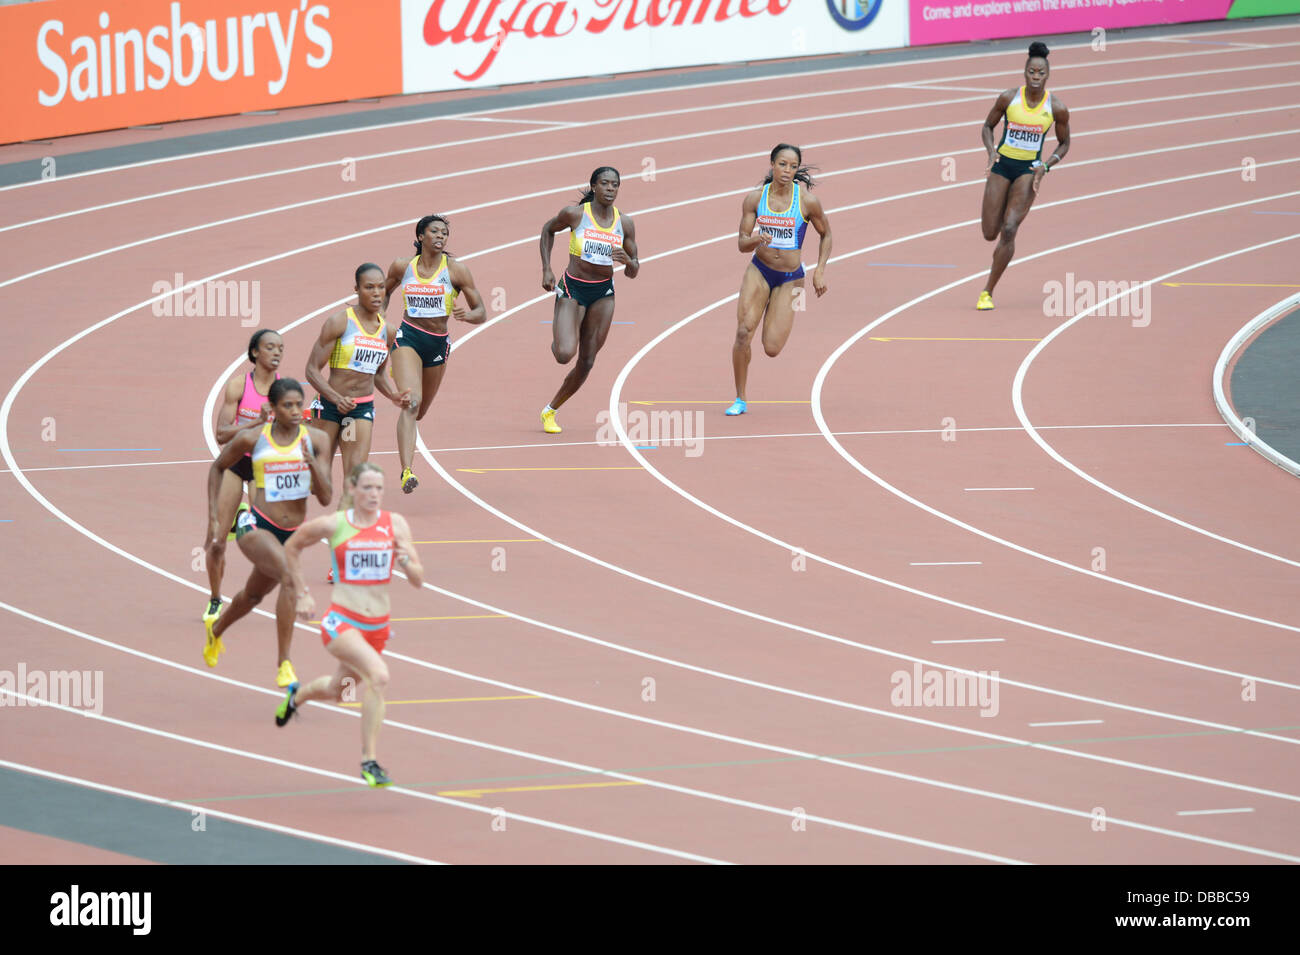 LONDON, UK. Saturday 27th July 2013. Christine Ohuruogo (3rd right) of Great Britain wins the Women's 400m event - Stock Image